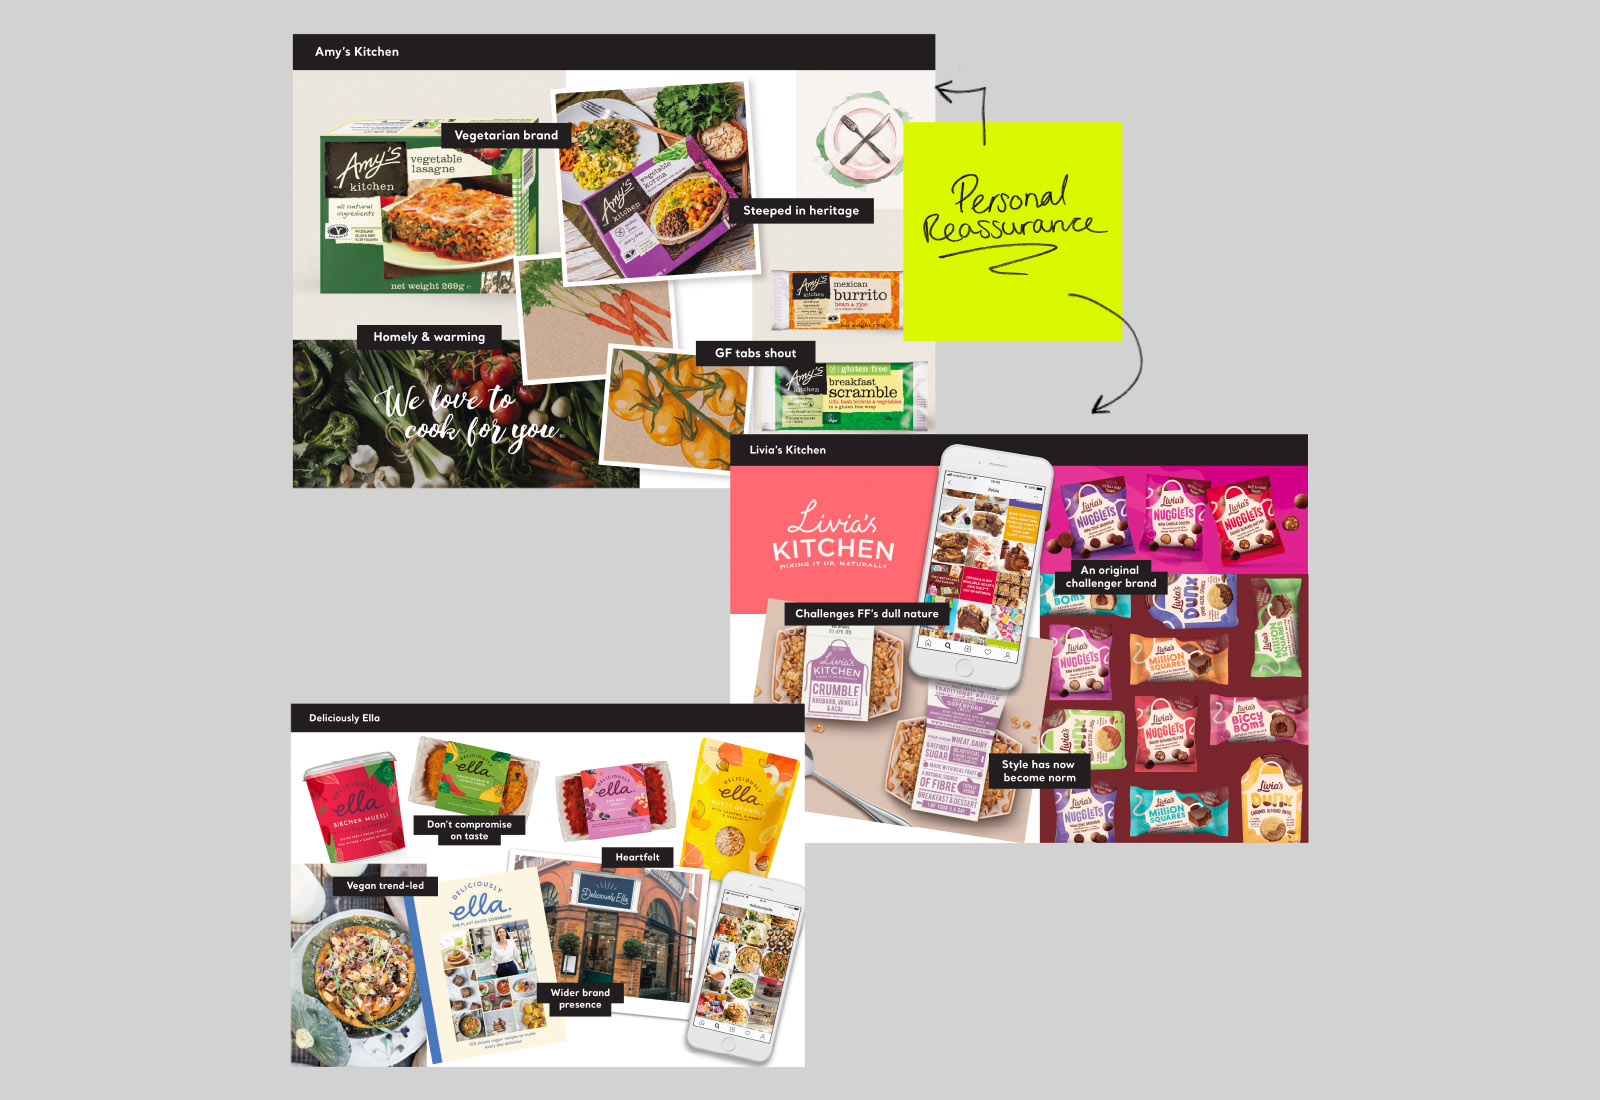 Dynamic content image from a design case study